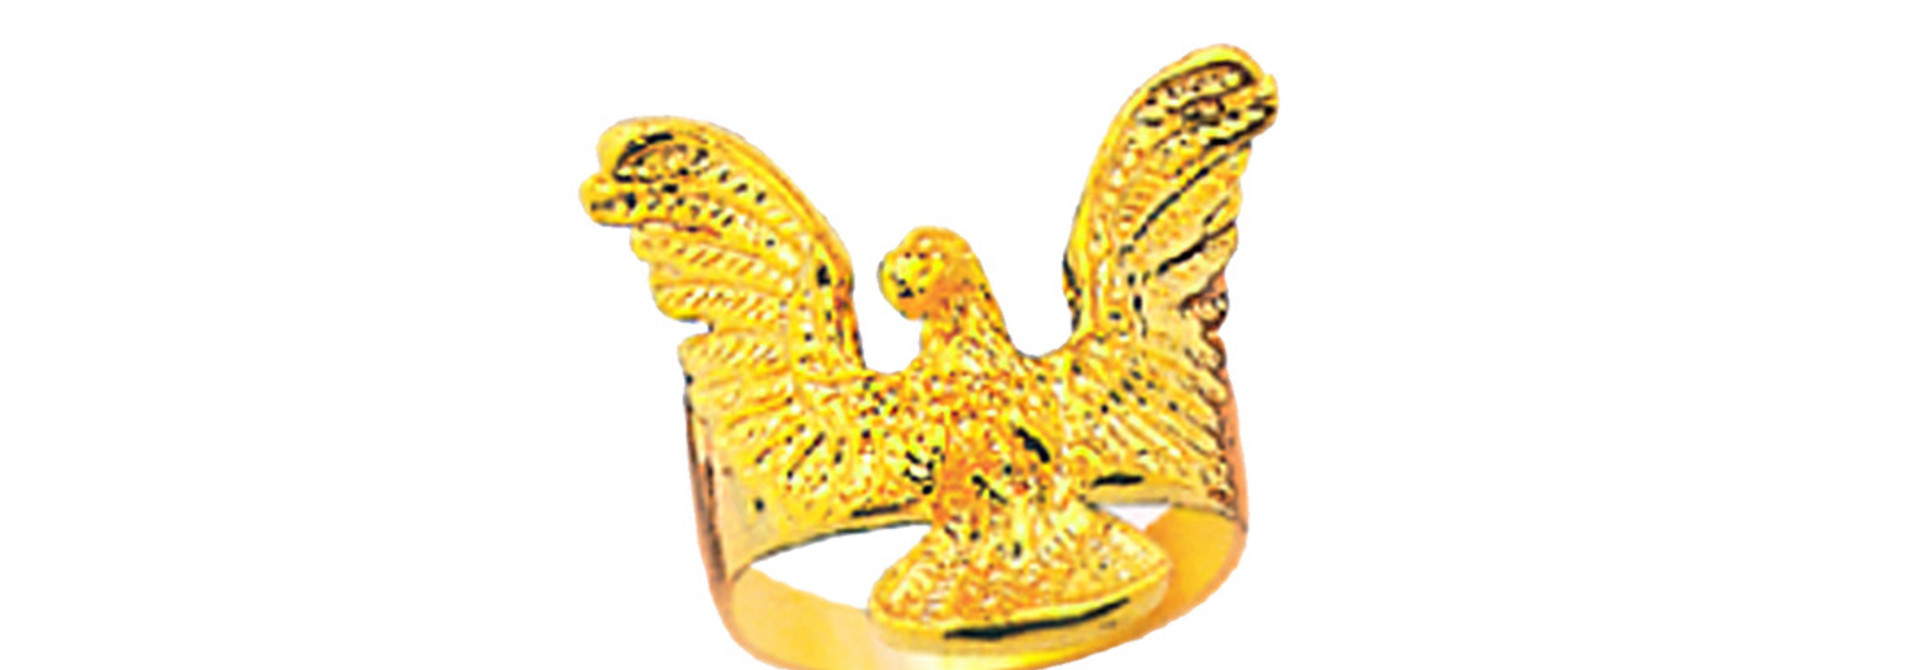 Arend ring